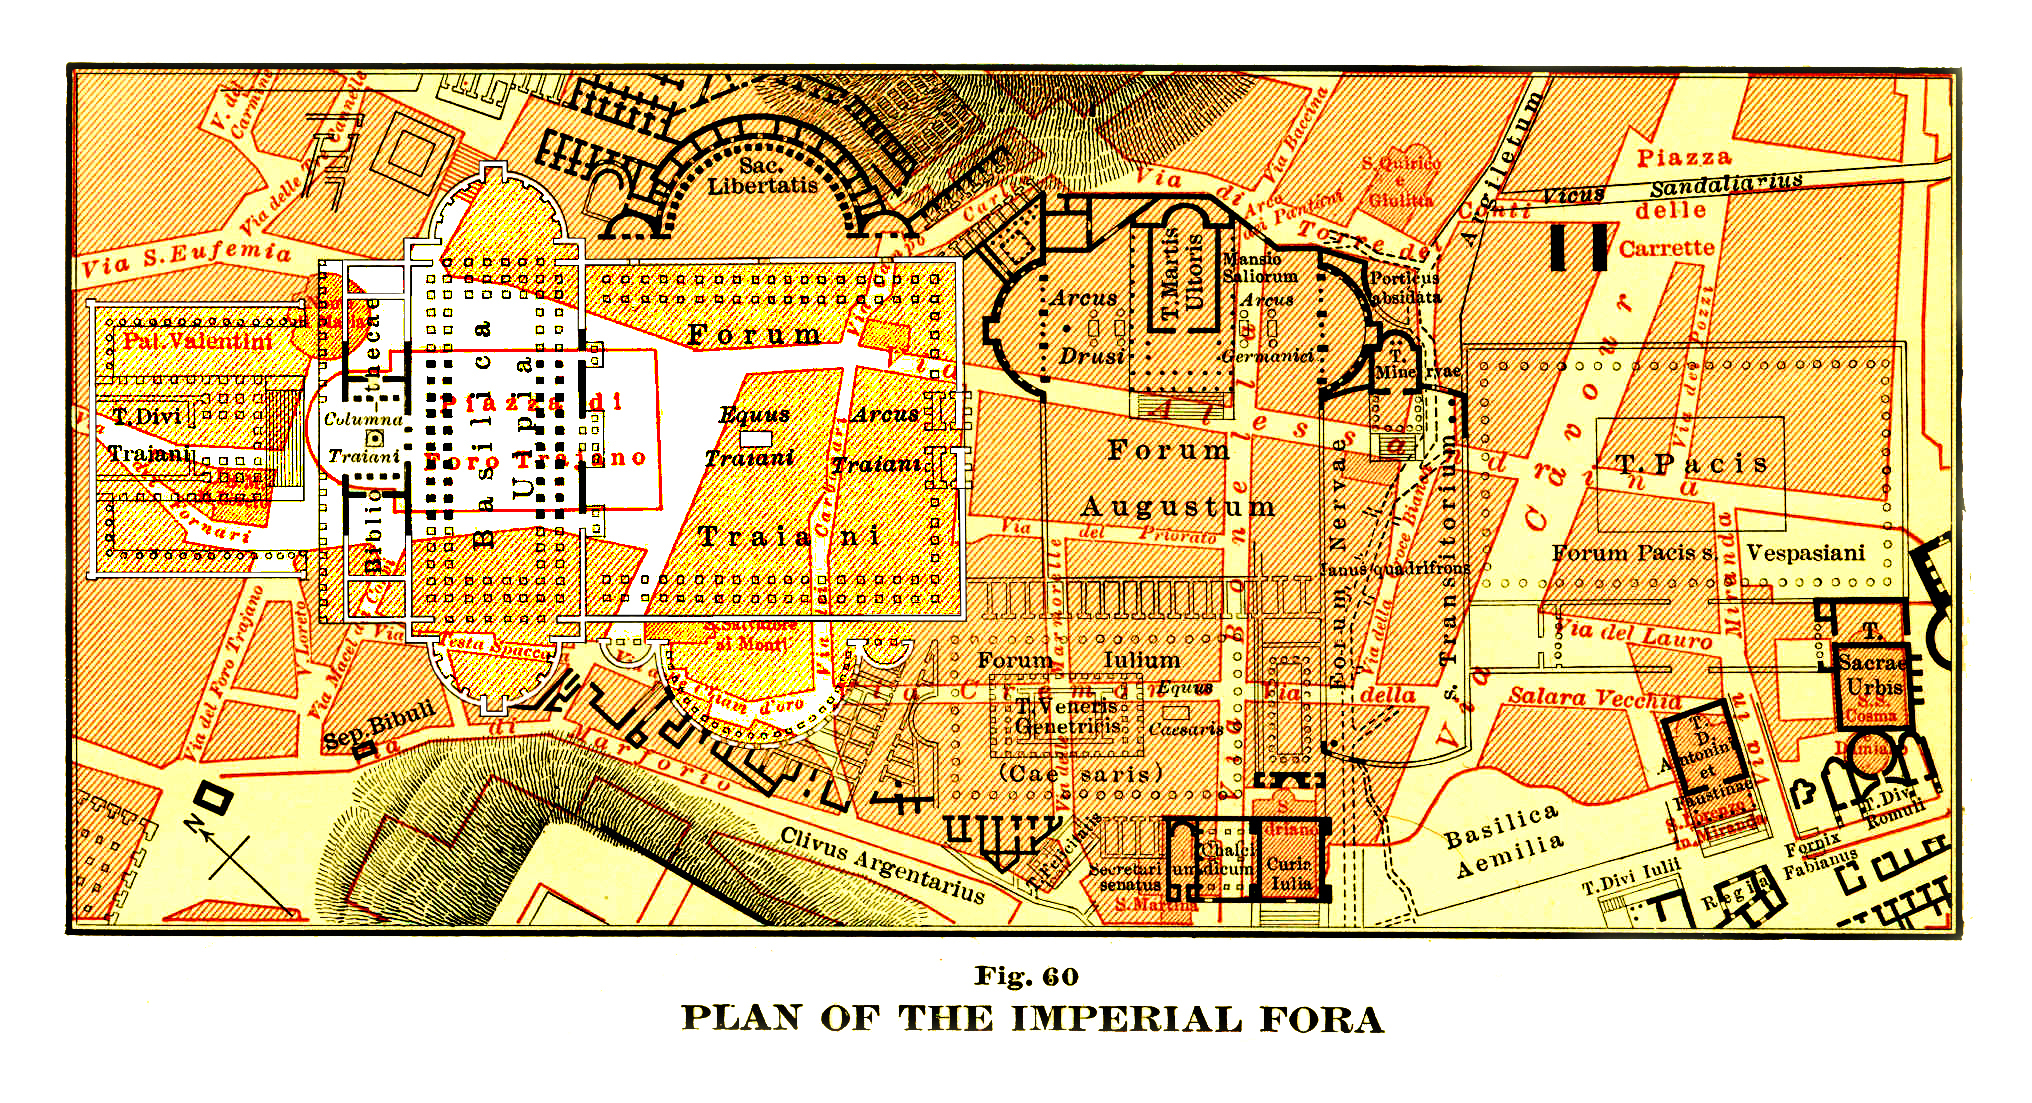 Imperial Fora - Map plan